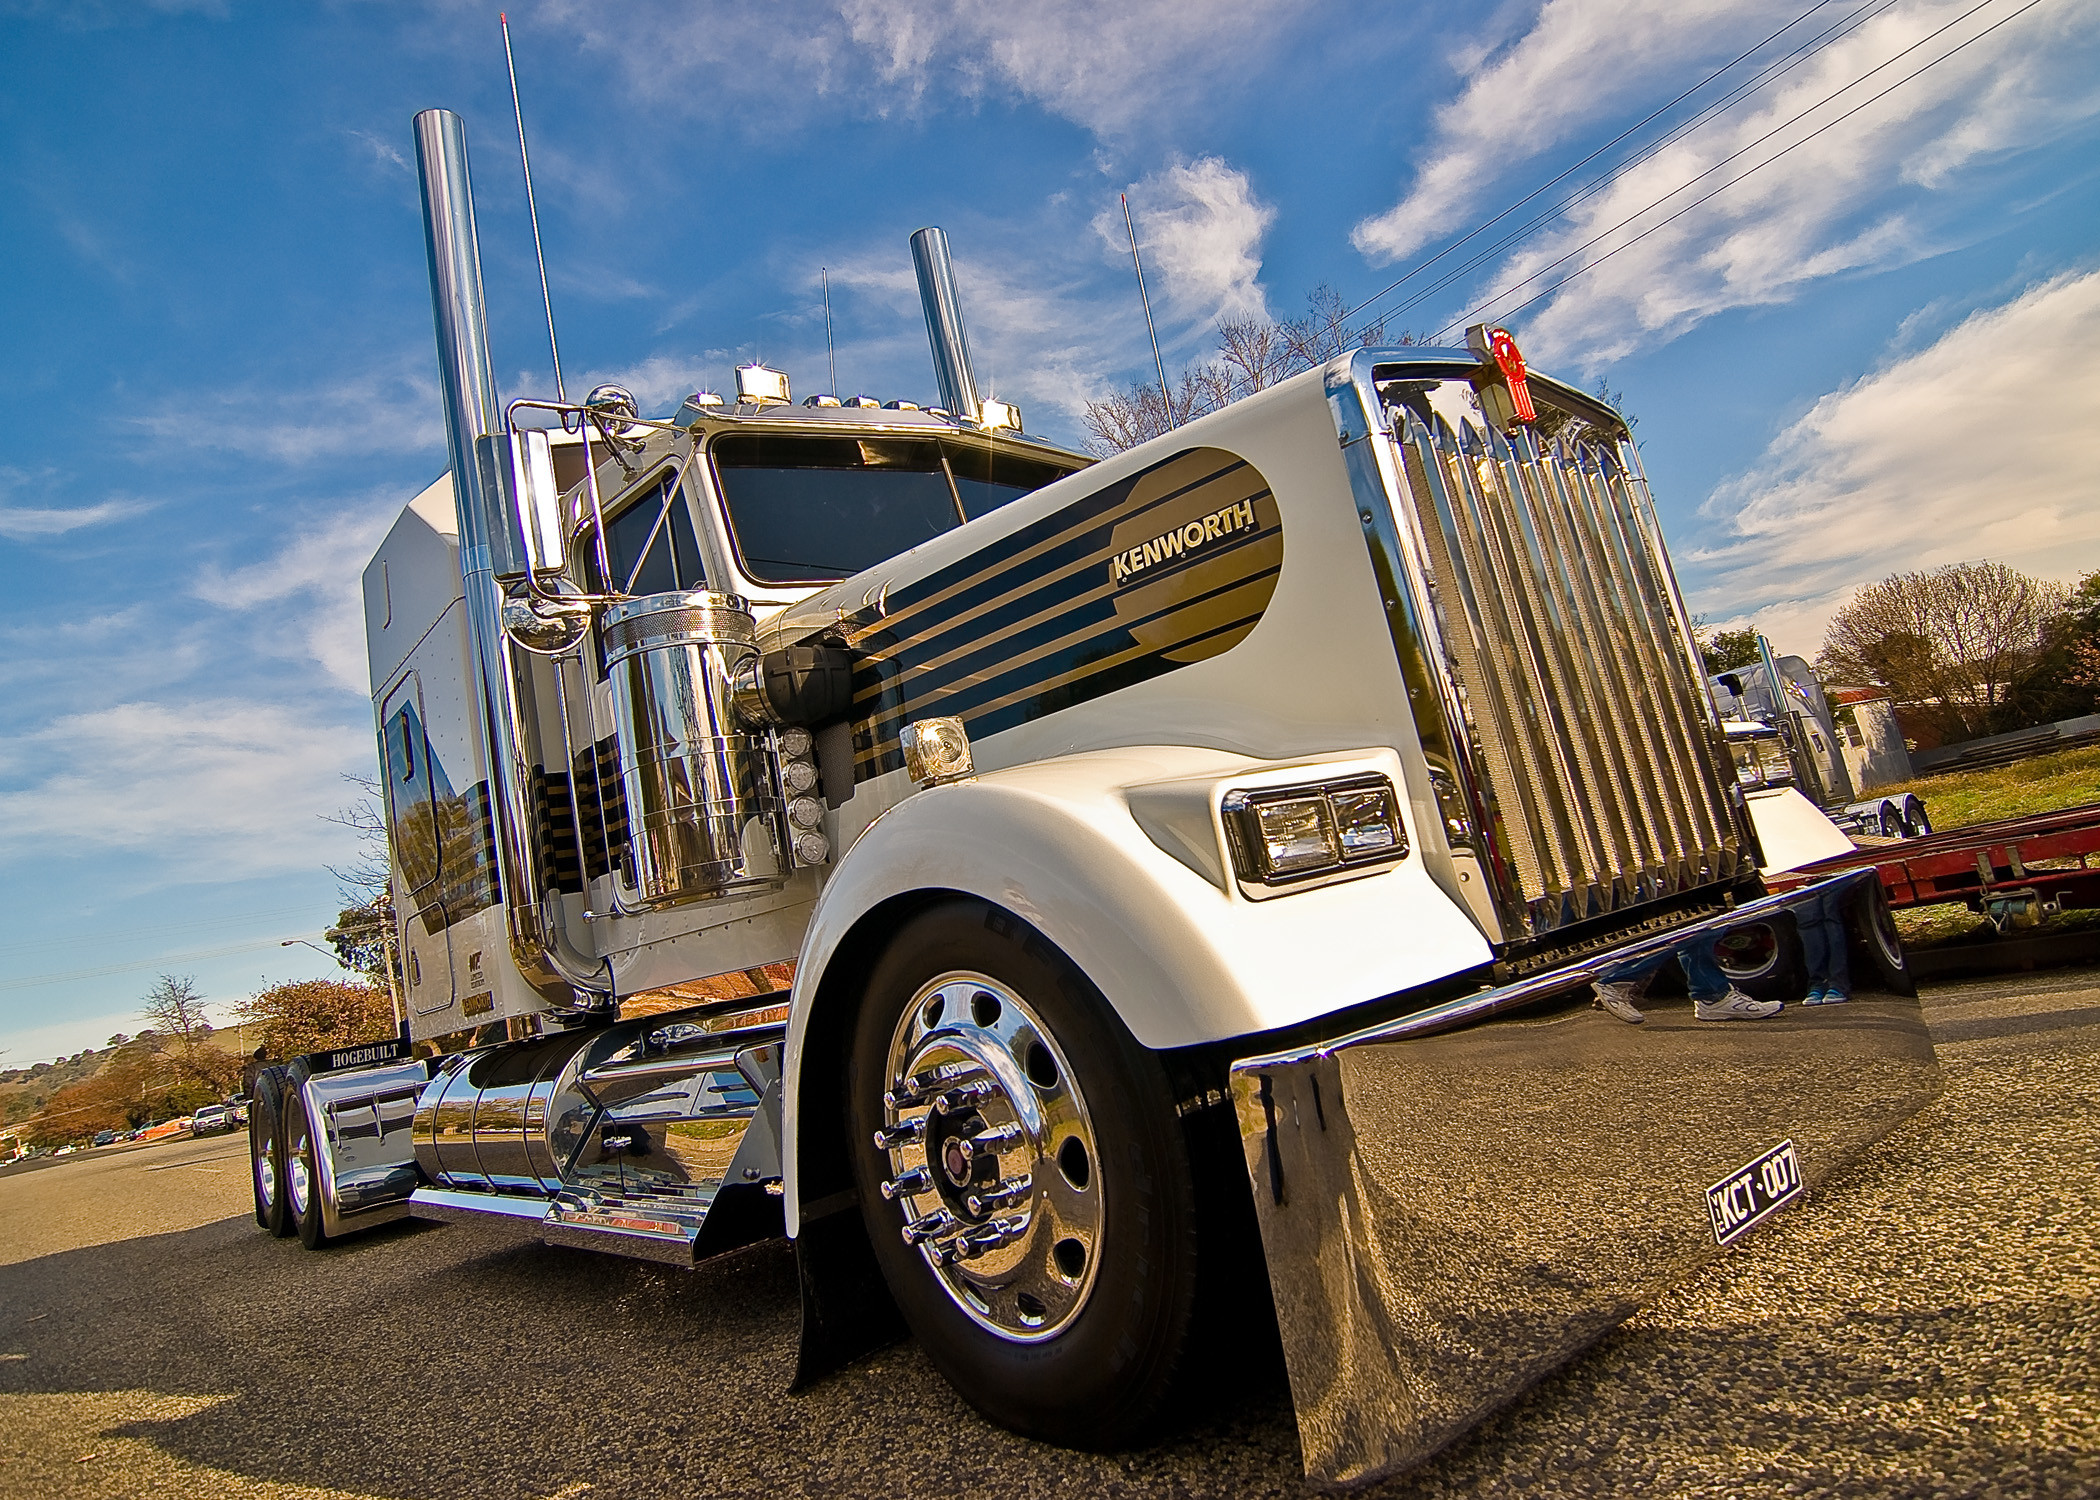 2100x1500 Kenworth W900 007 Limited Edition wallpaper |  | 172721 |  WallpaperUP